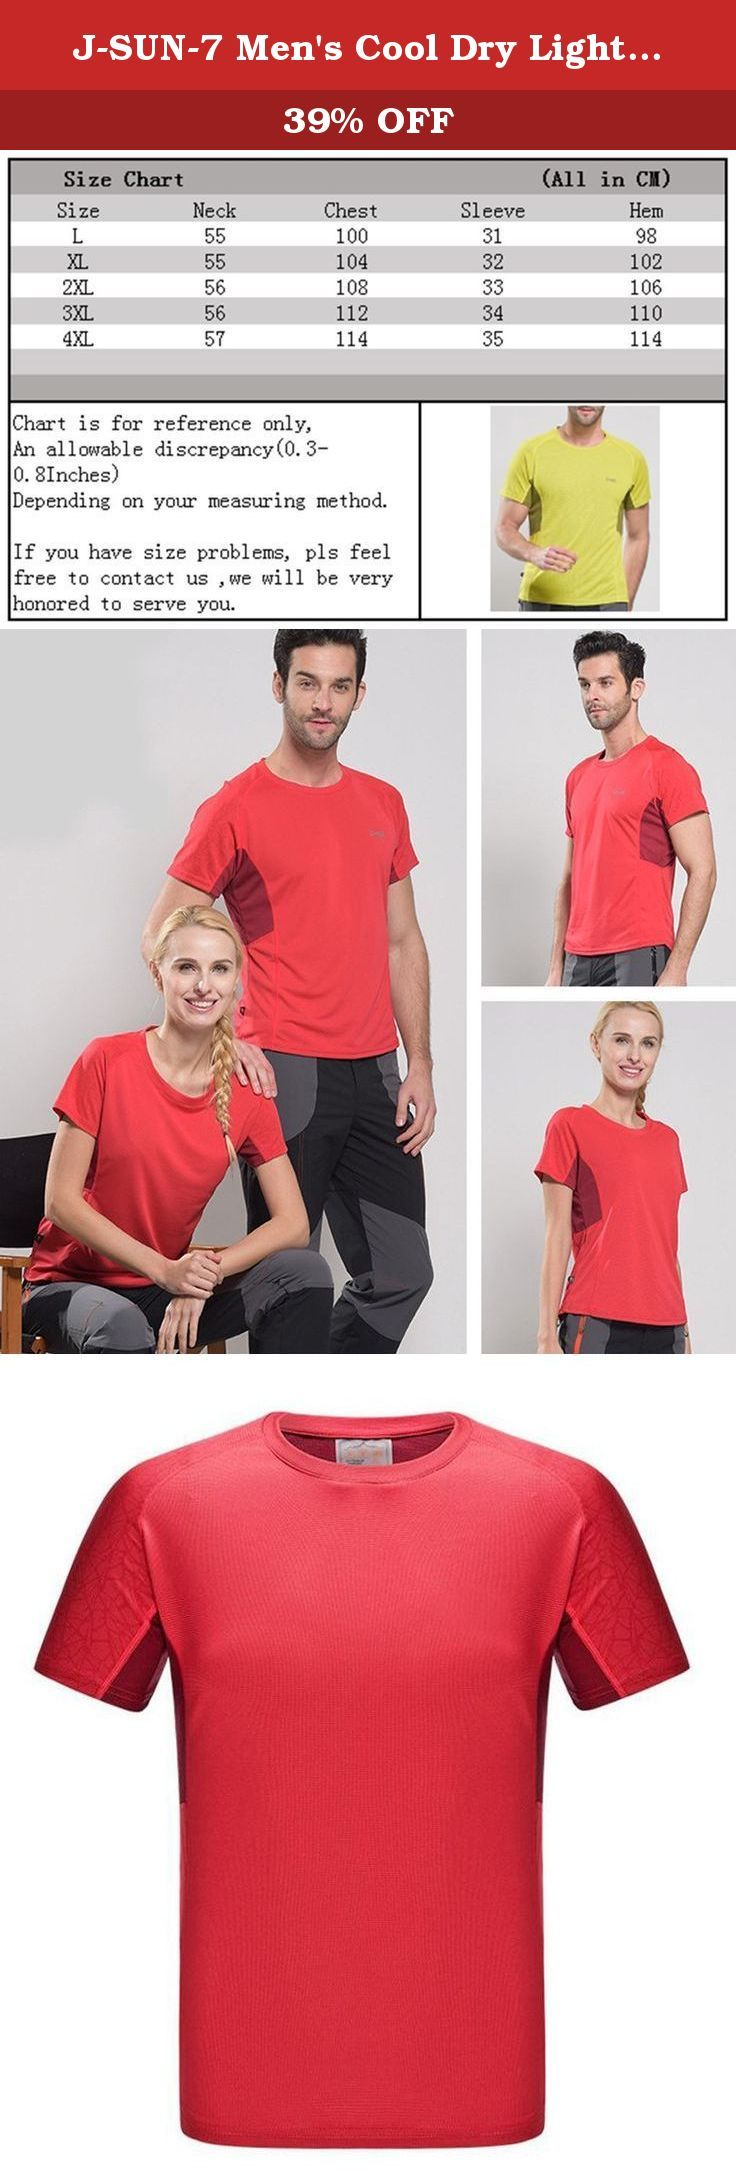 J-SUN-7 Men's Cool Dry Lightweight Solid Color T-Shirt Running Short Sleeve Top(Red(Men),US L/AsianL). A Letter to Customer J-SUN-7 Fashion Store aims to provide the best products and service for you and make your life more convenient & brilliant. To ensure what you received works in good condition, all the products we sell from manufacturing - stocking - packing - shipping have passed strict quality test. All we want is to serve our customers well and make you feel surprised when you get...